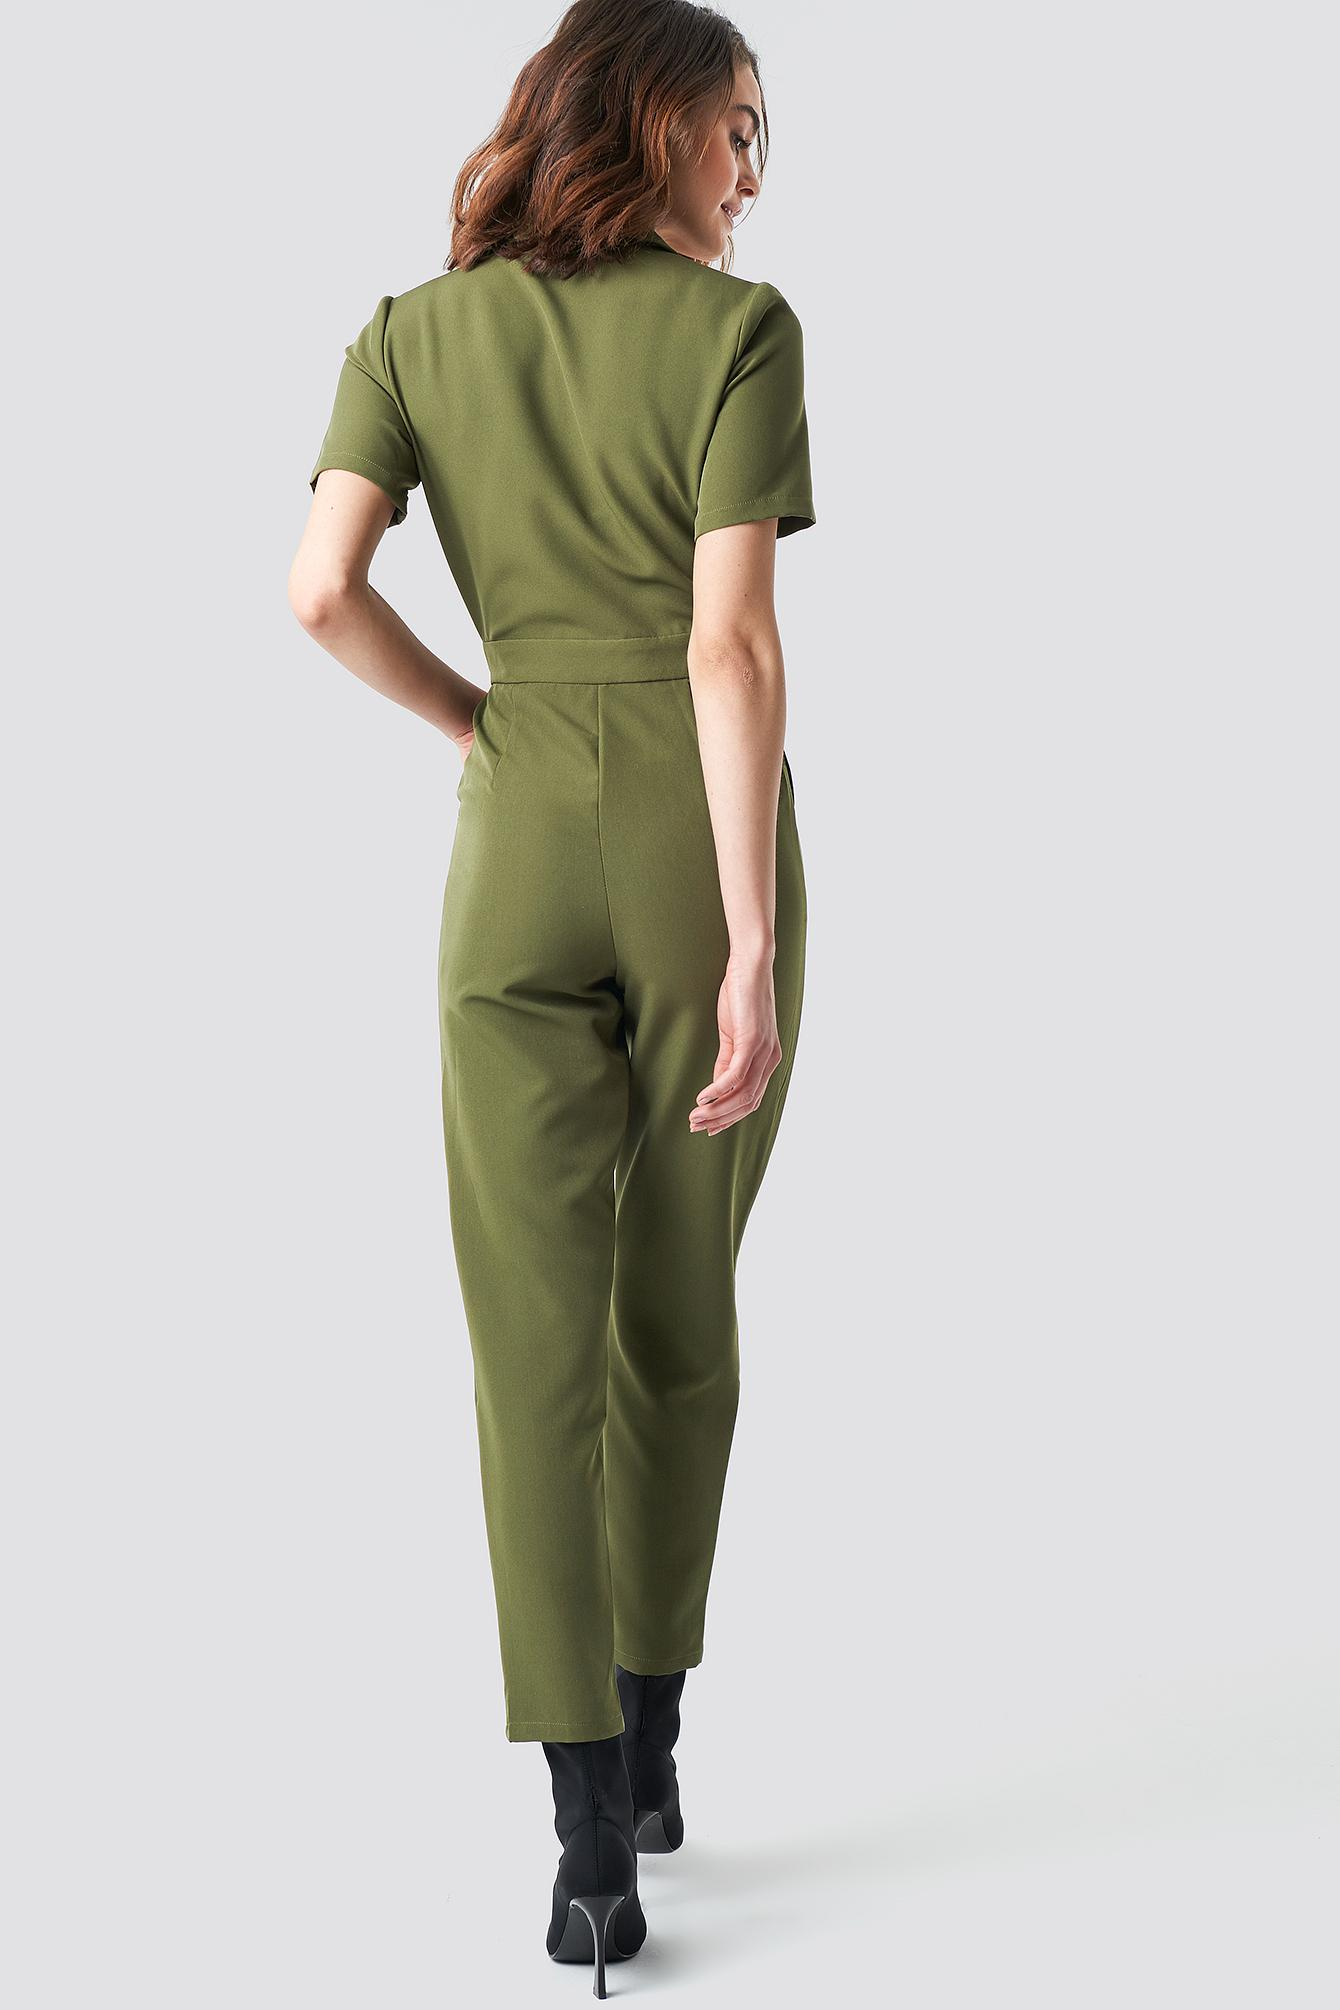 ea7b102ceb9 Lyst - NA-KD Overlap Collared Jumpsuit Green in Green